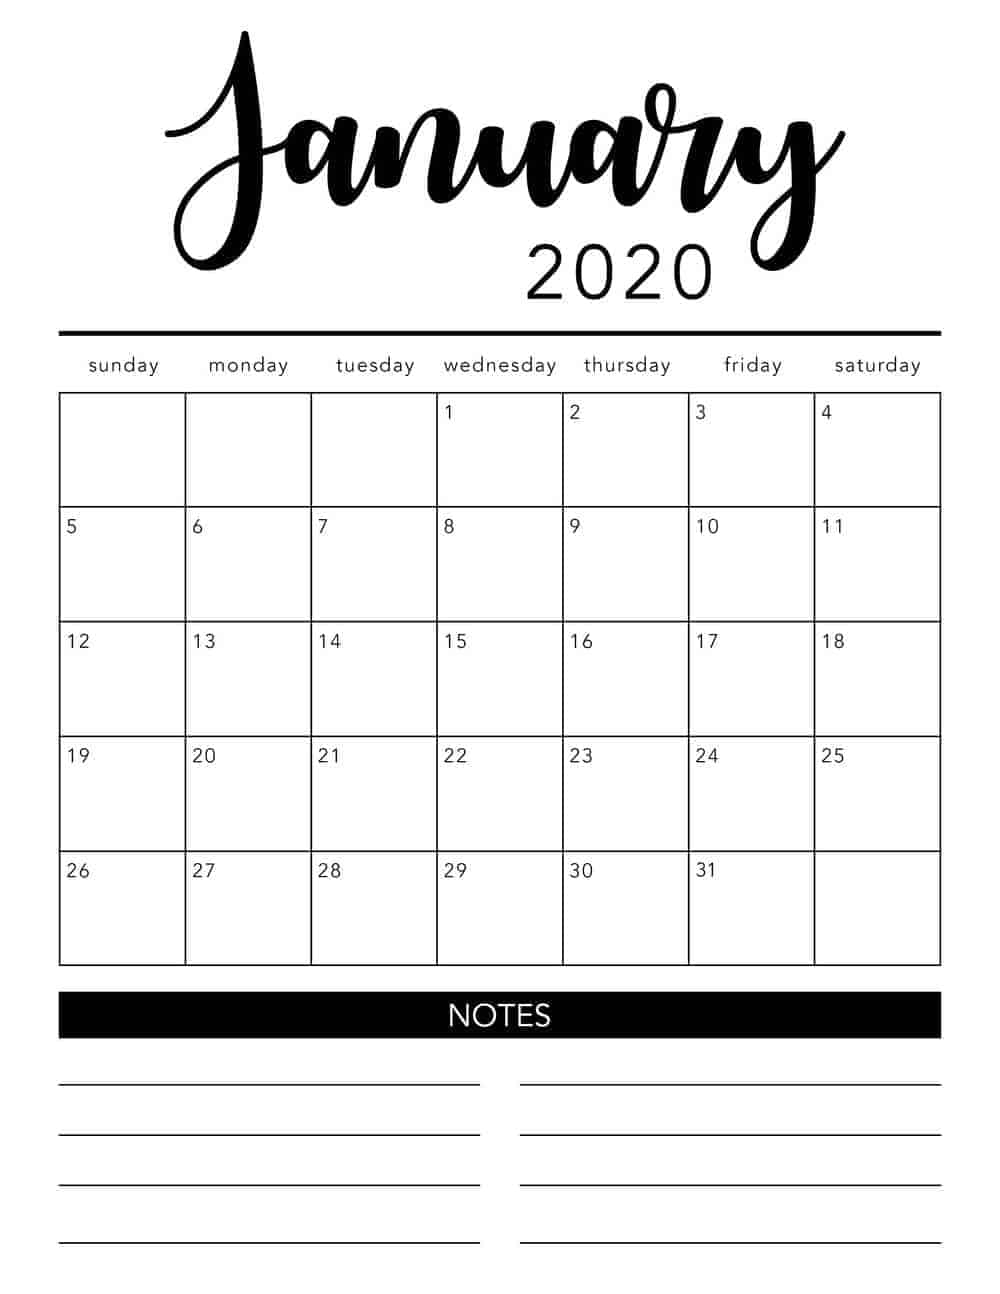 photograph regarding Printable Calendar Template called Absolutely free 2020 Printable Calendar Template (2 colours!) - I Center